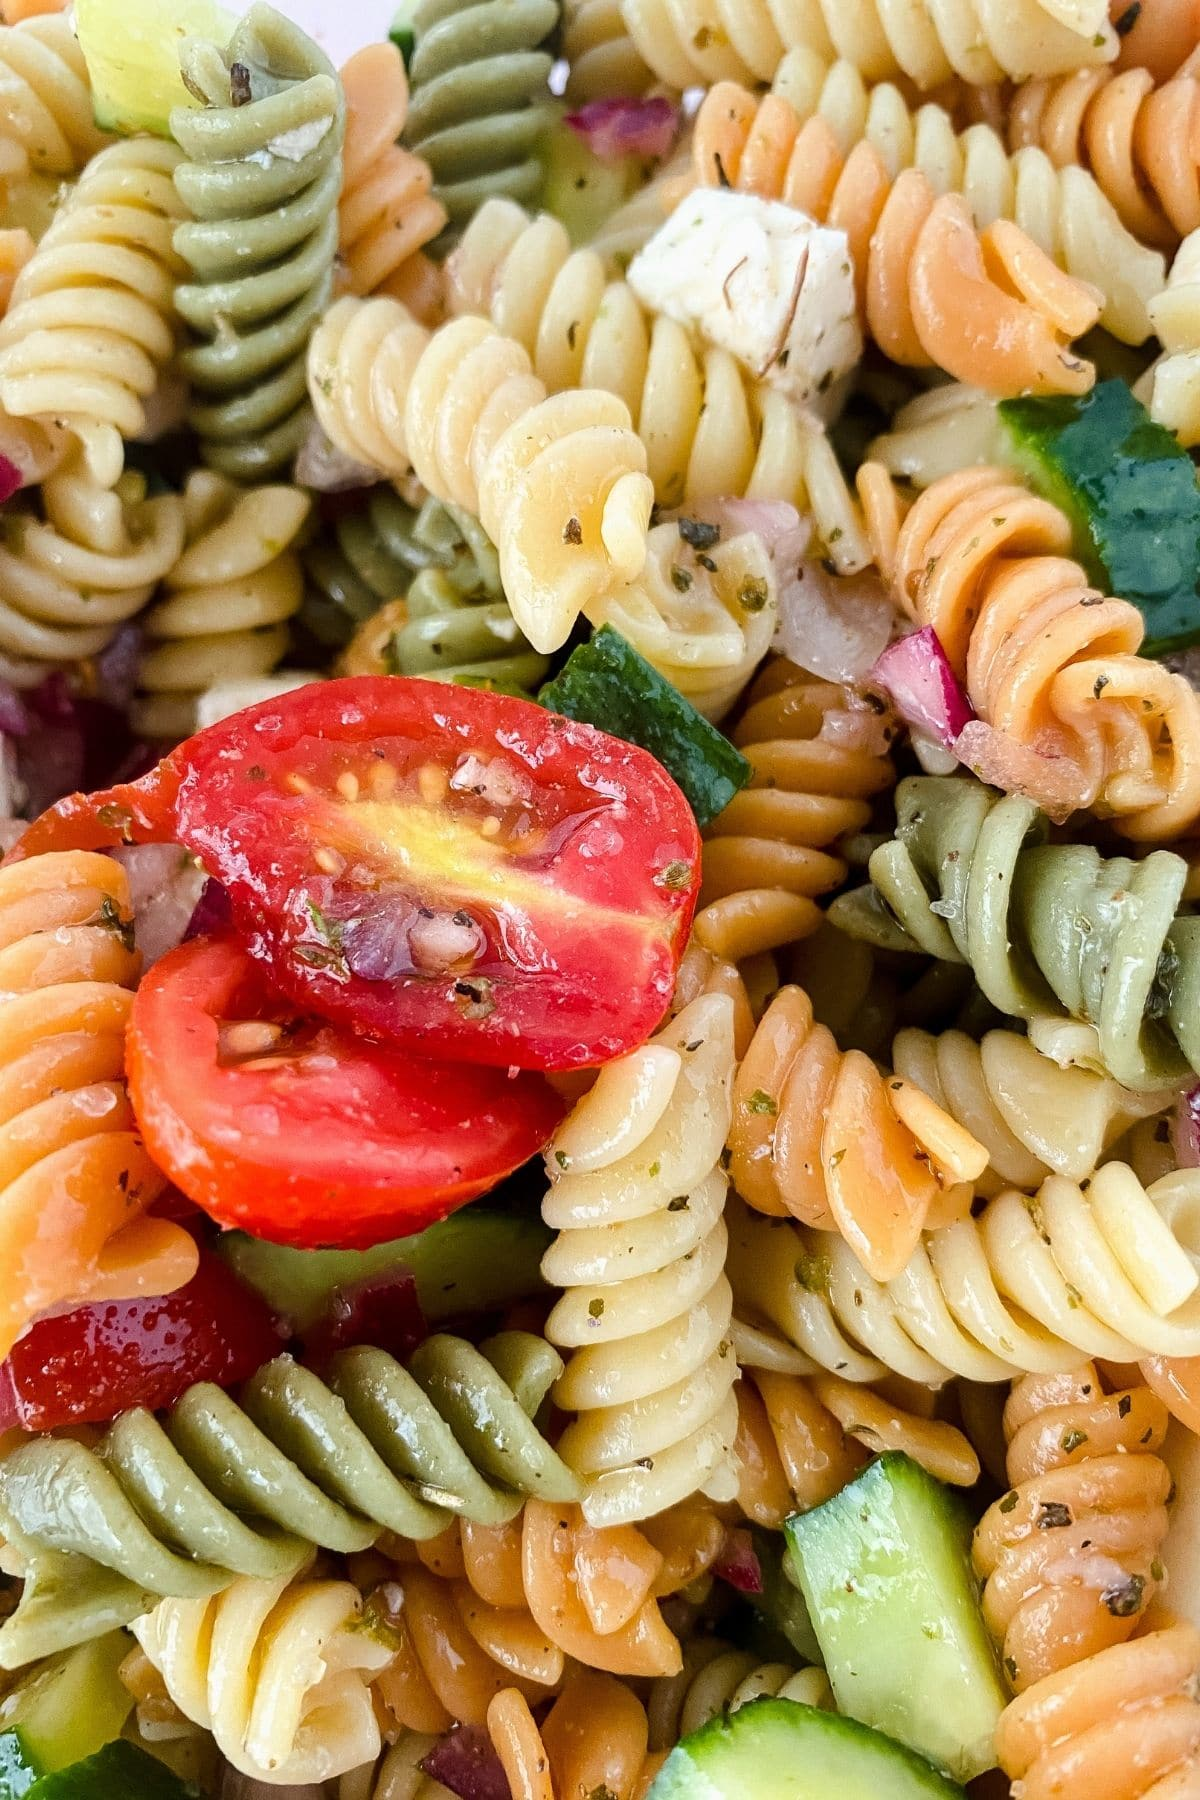 Close up image of pasta salad with tomato and colorful rotini